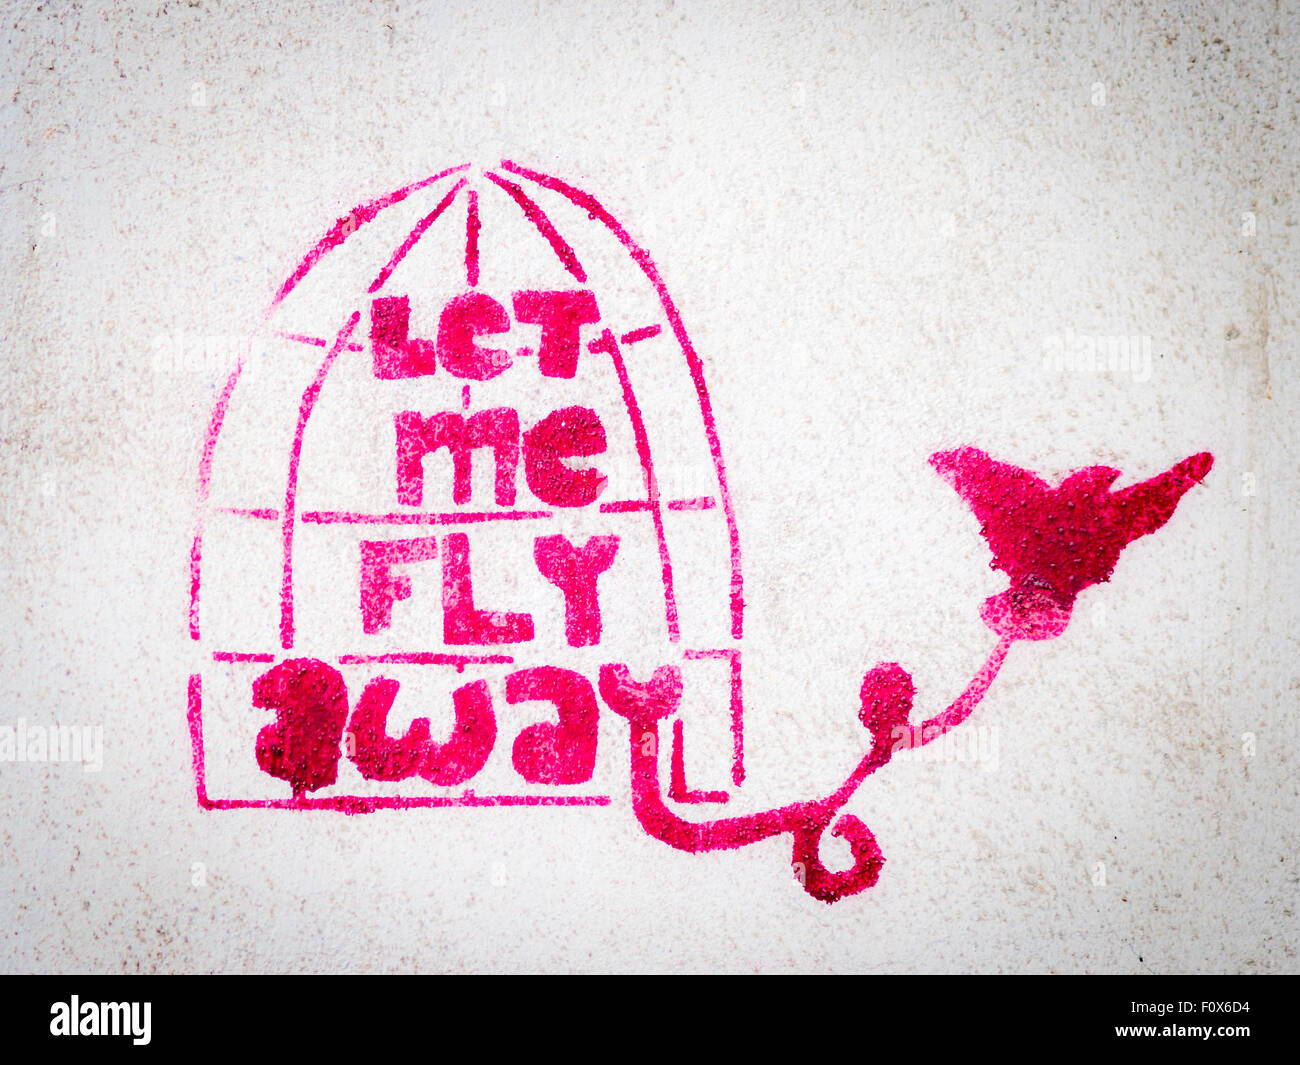 Pink stencil graffiti with bird leaving a cage - Stock Image